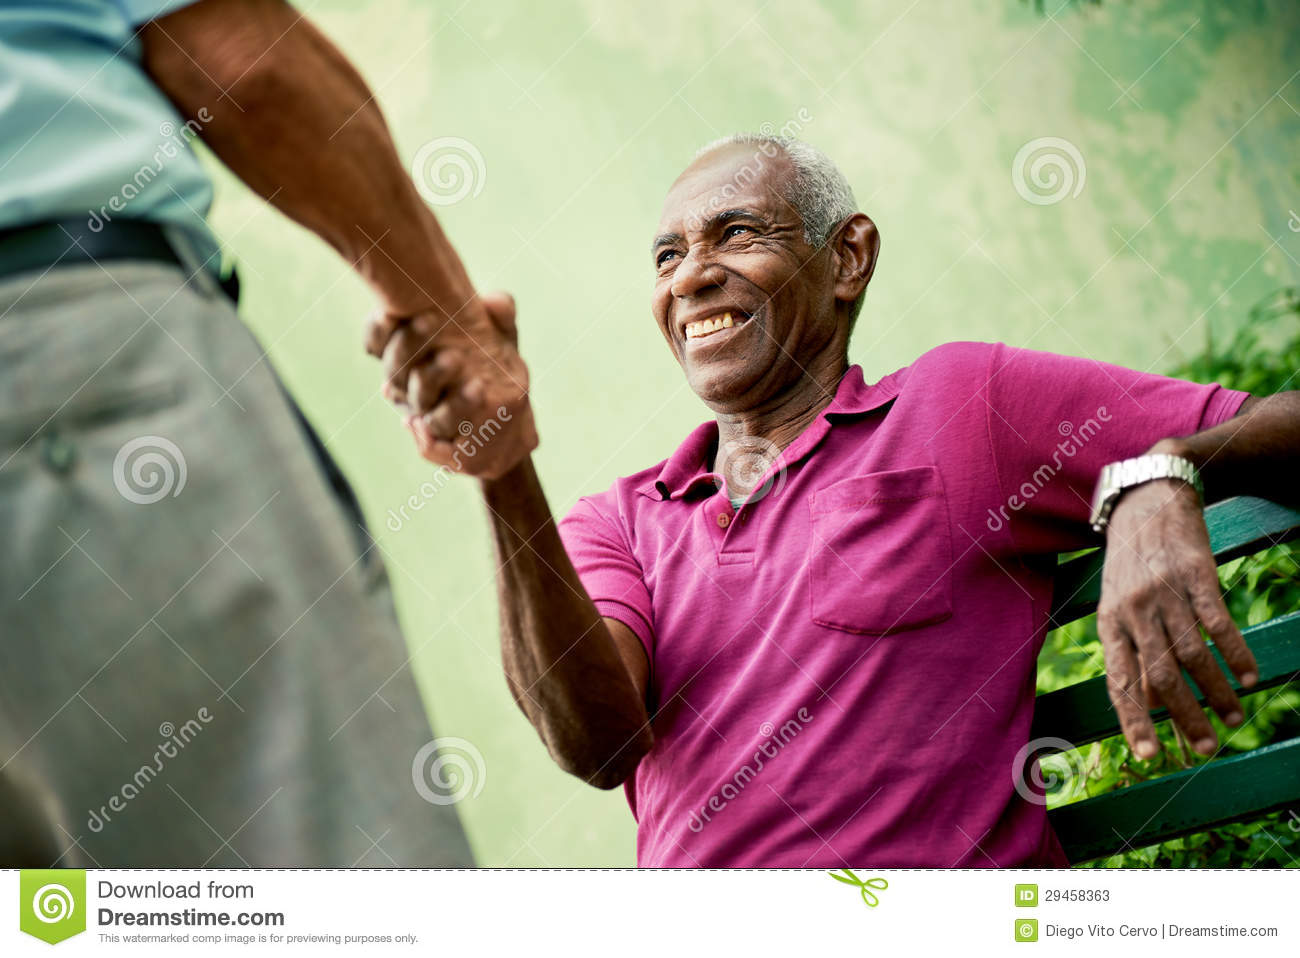 ... Photos: Old black and caucasian men meeting and shaking hands in park